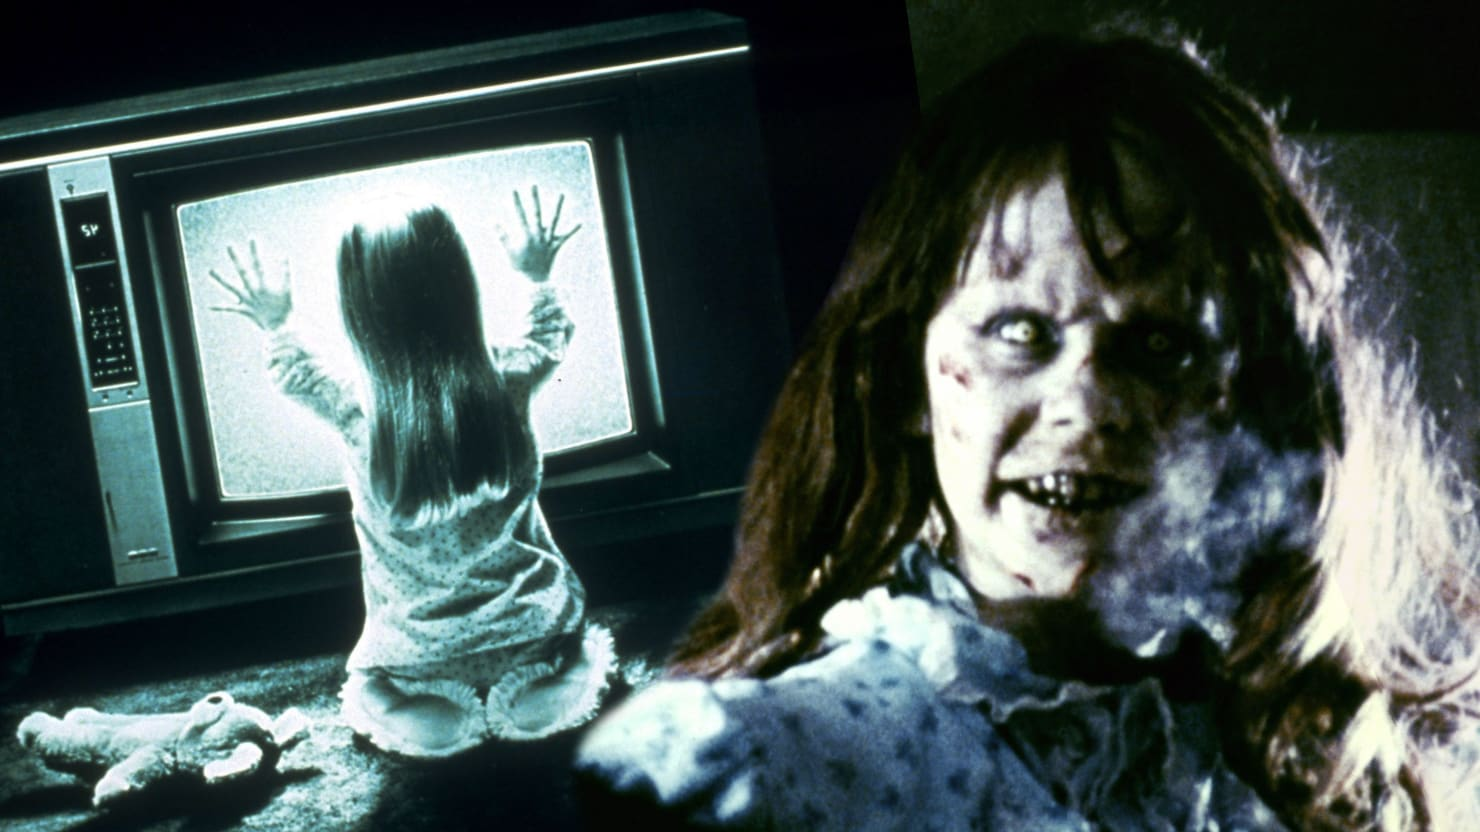 The 'Cursed' Horror Movies That Resulted in Real-Life Death and Tragedy